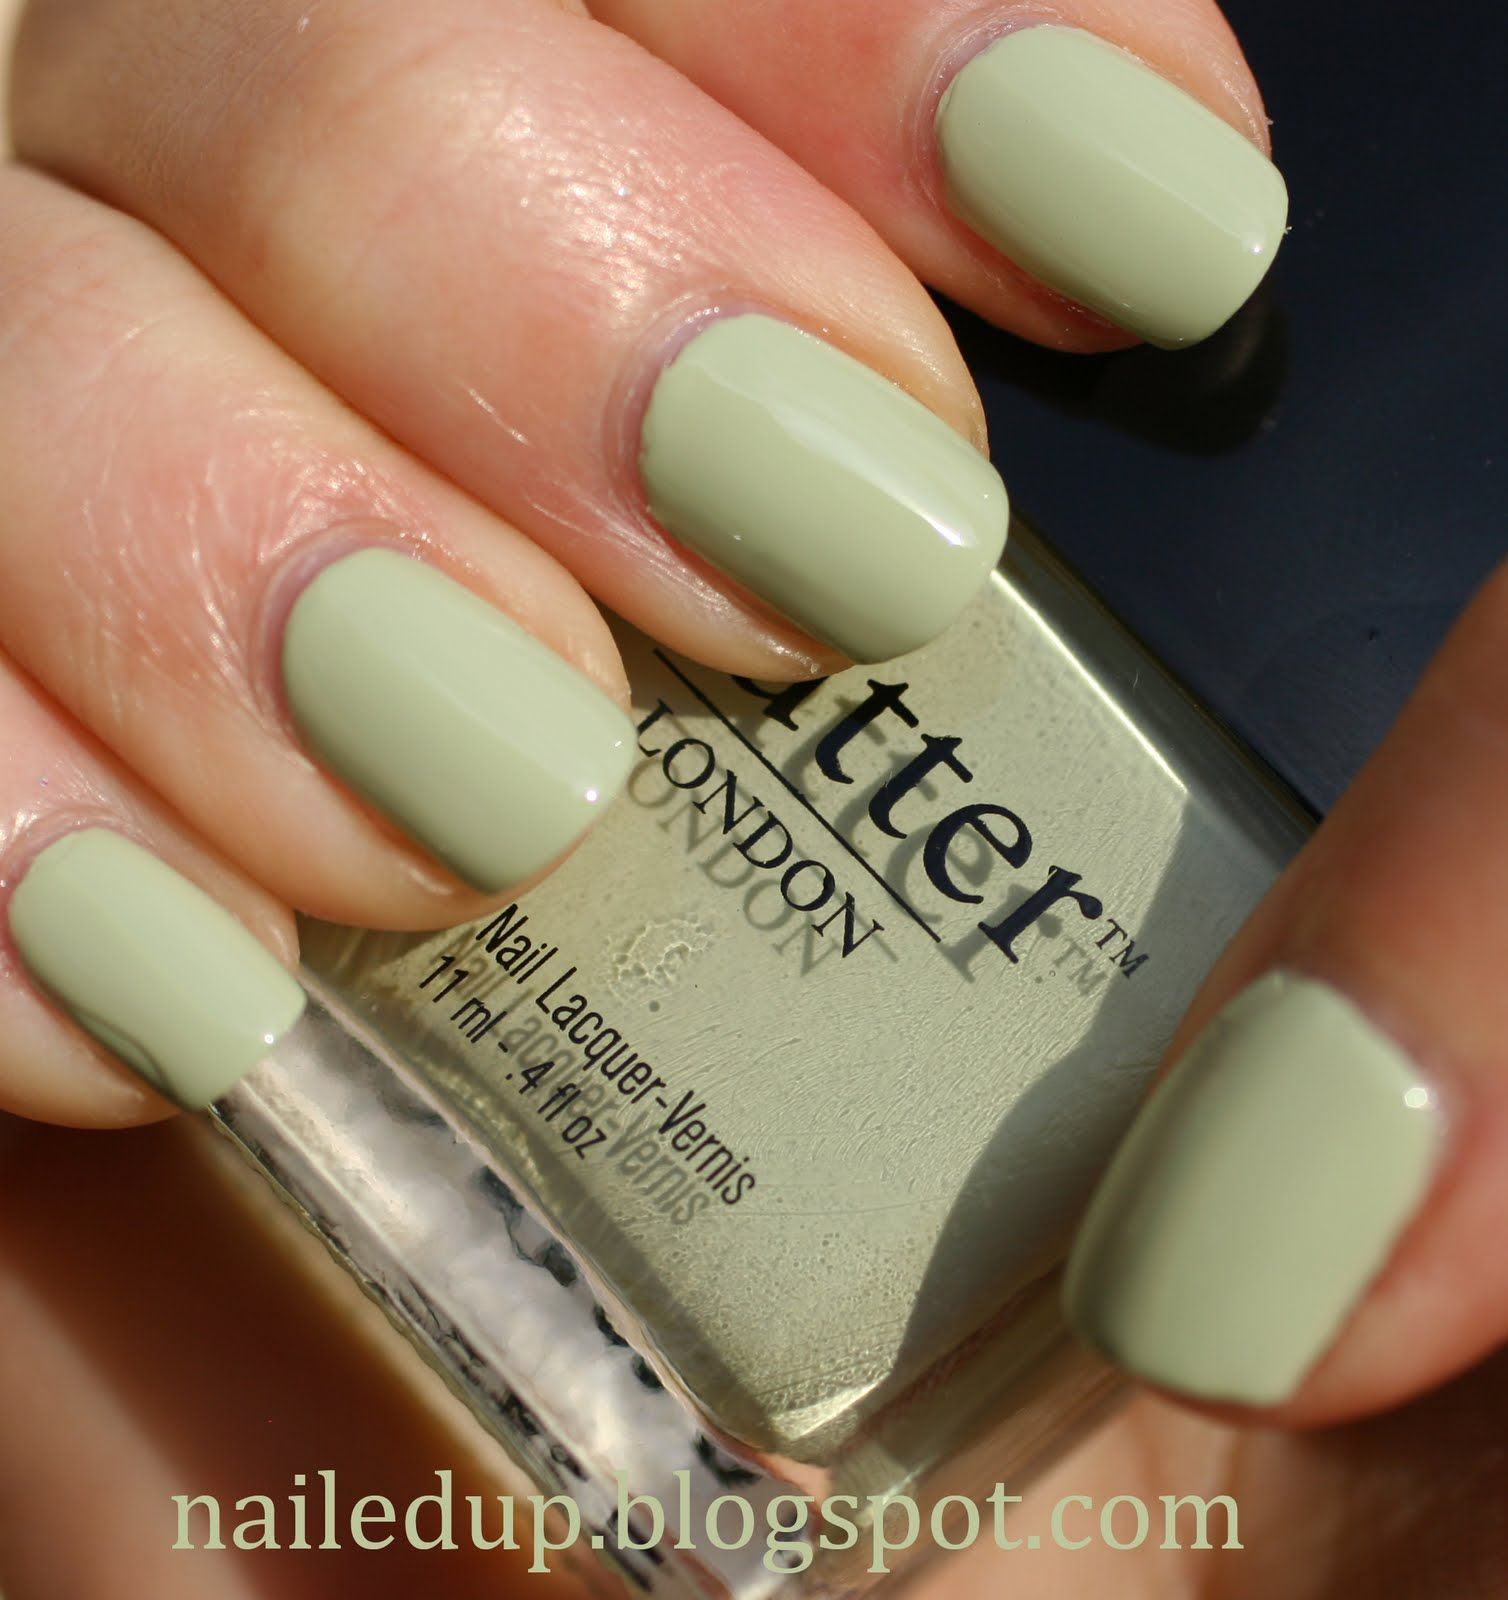 Butter London - Bossy Boots   My Nail Polish Collection   Pinterest ...